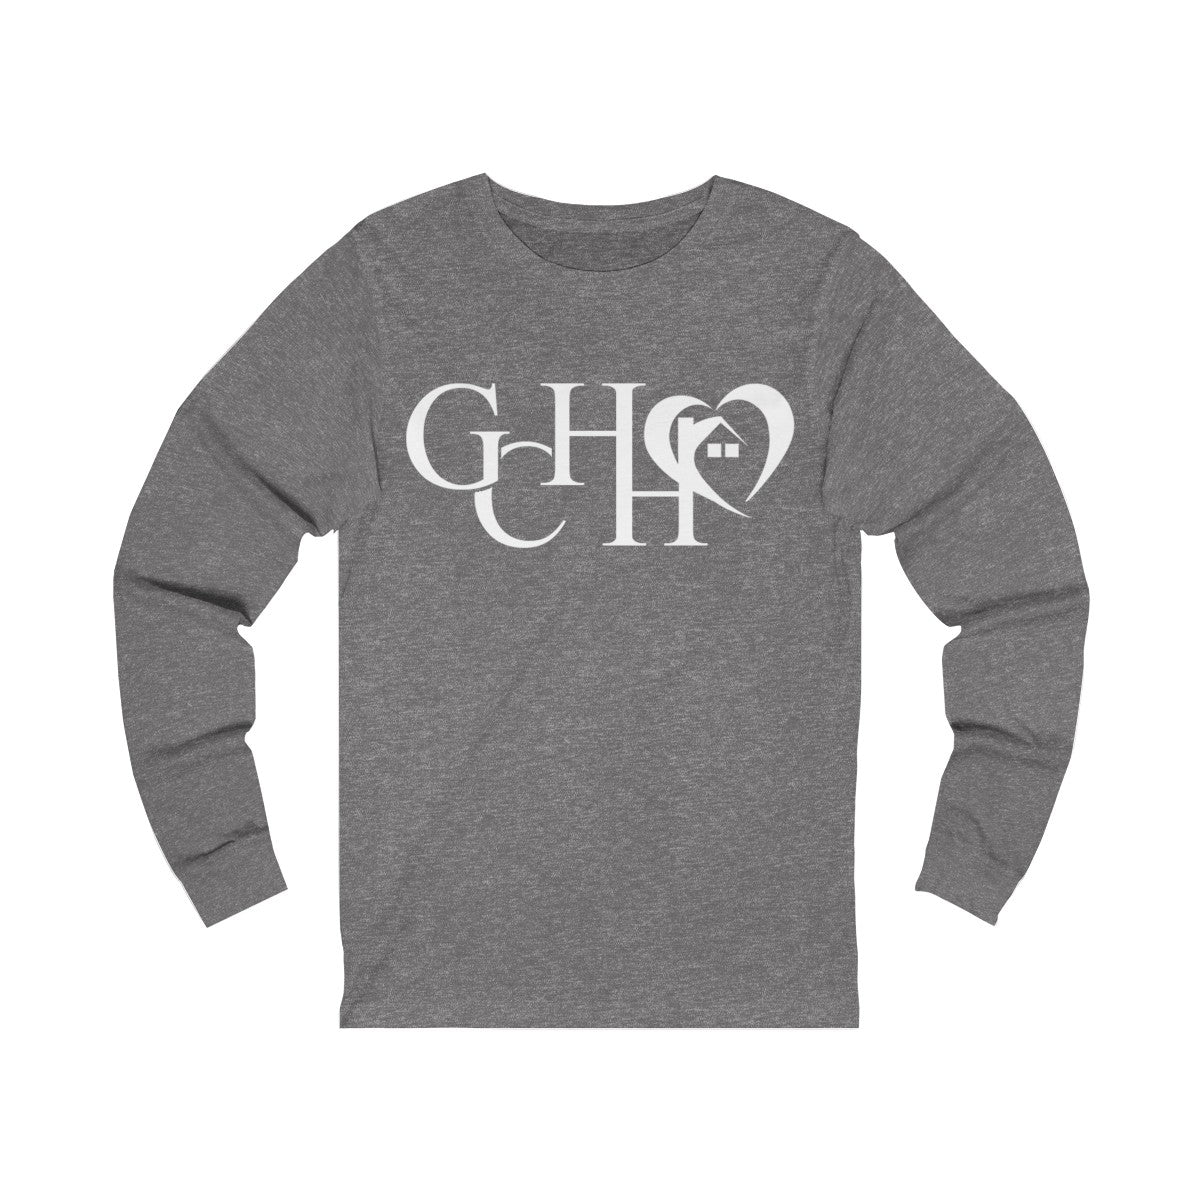 GCHH Long Sleeve Tee | Unisex